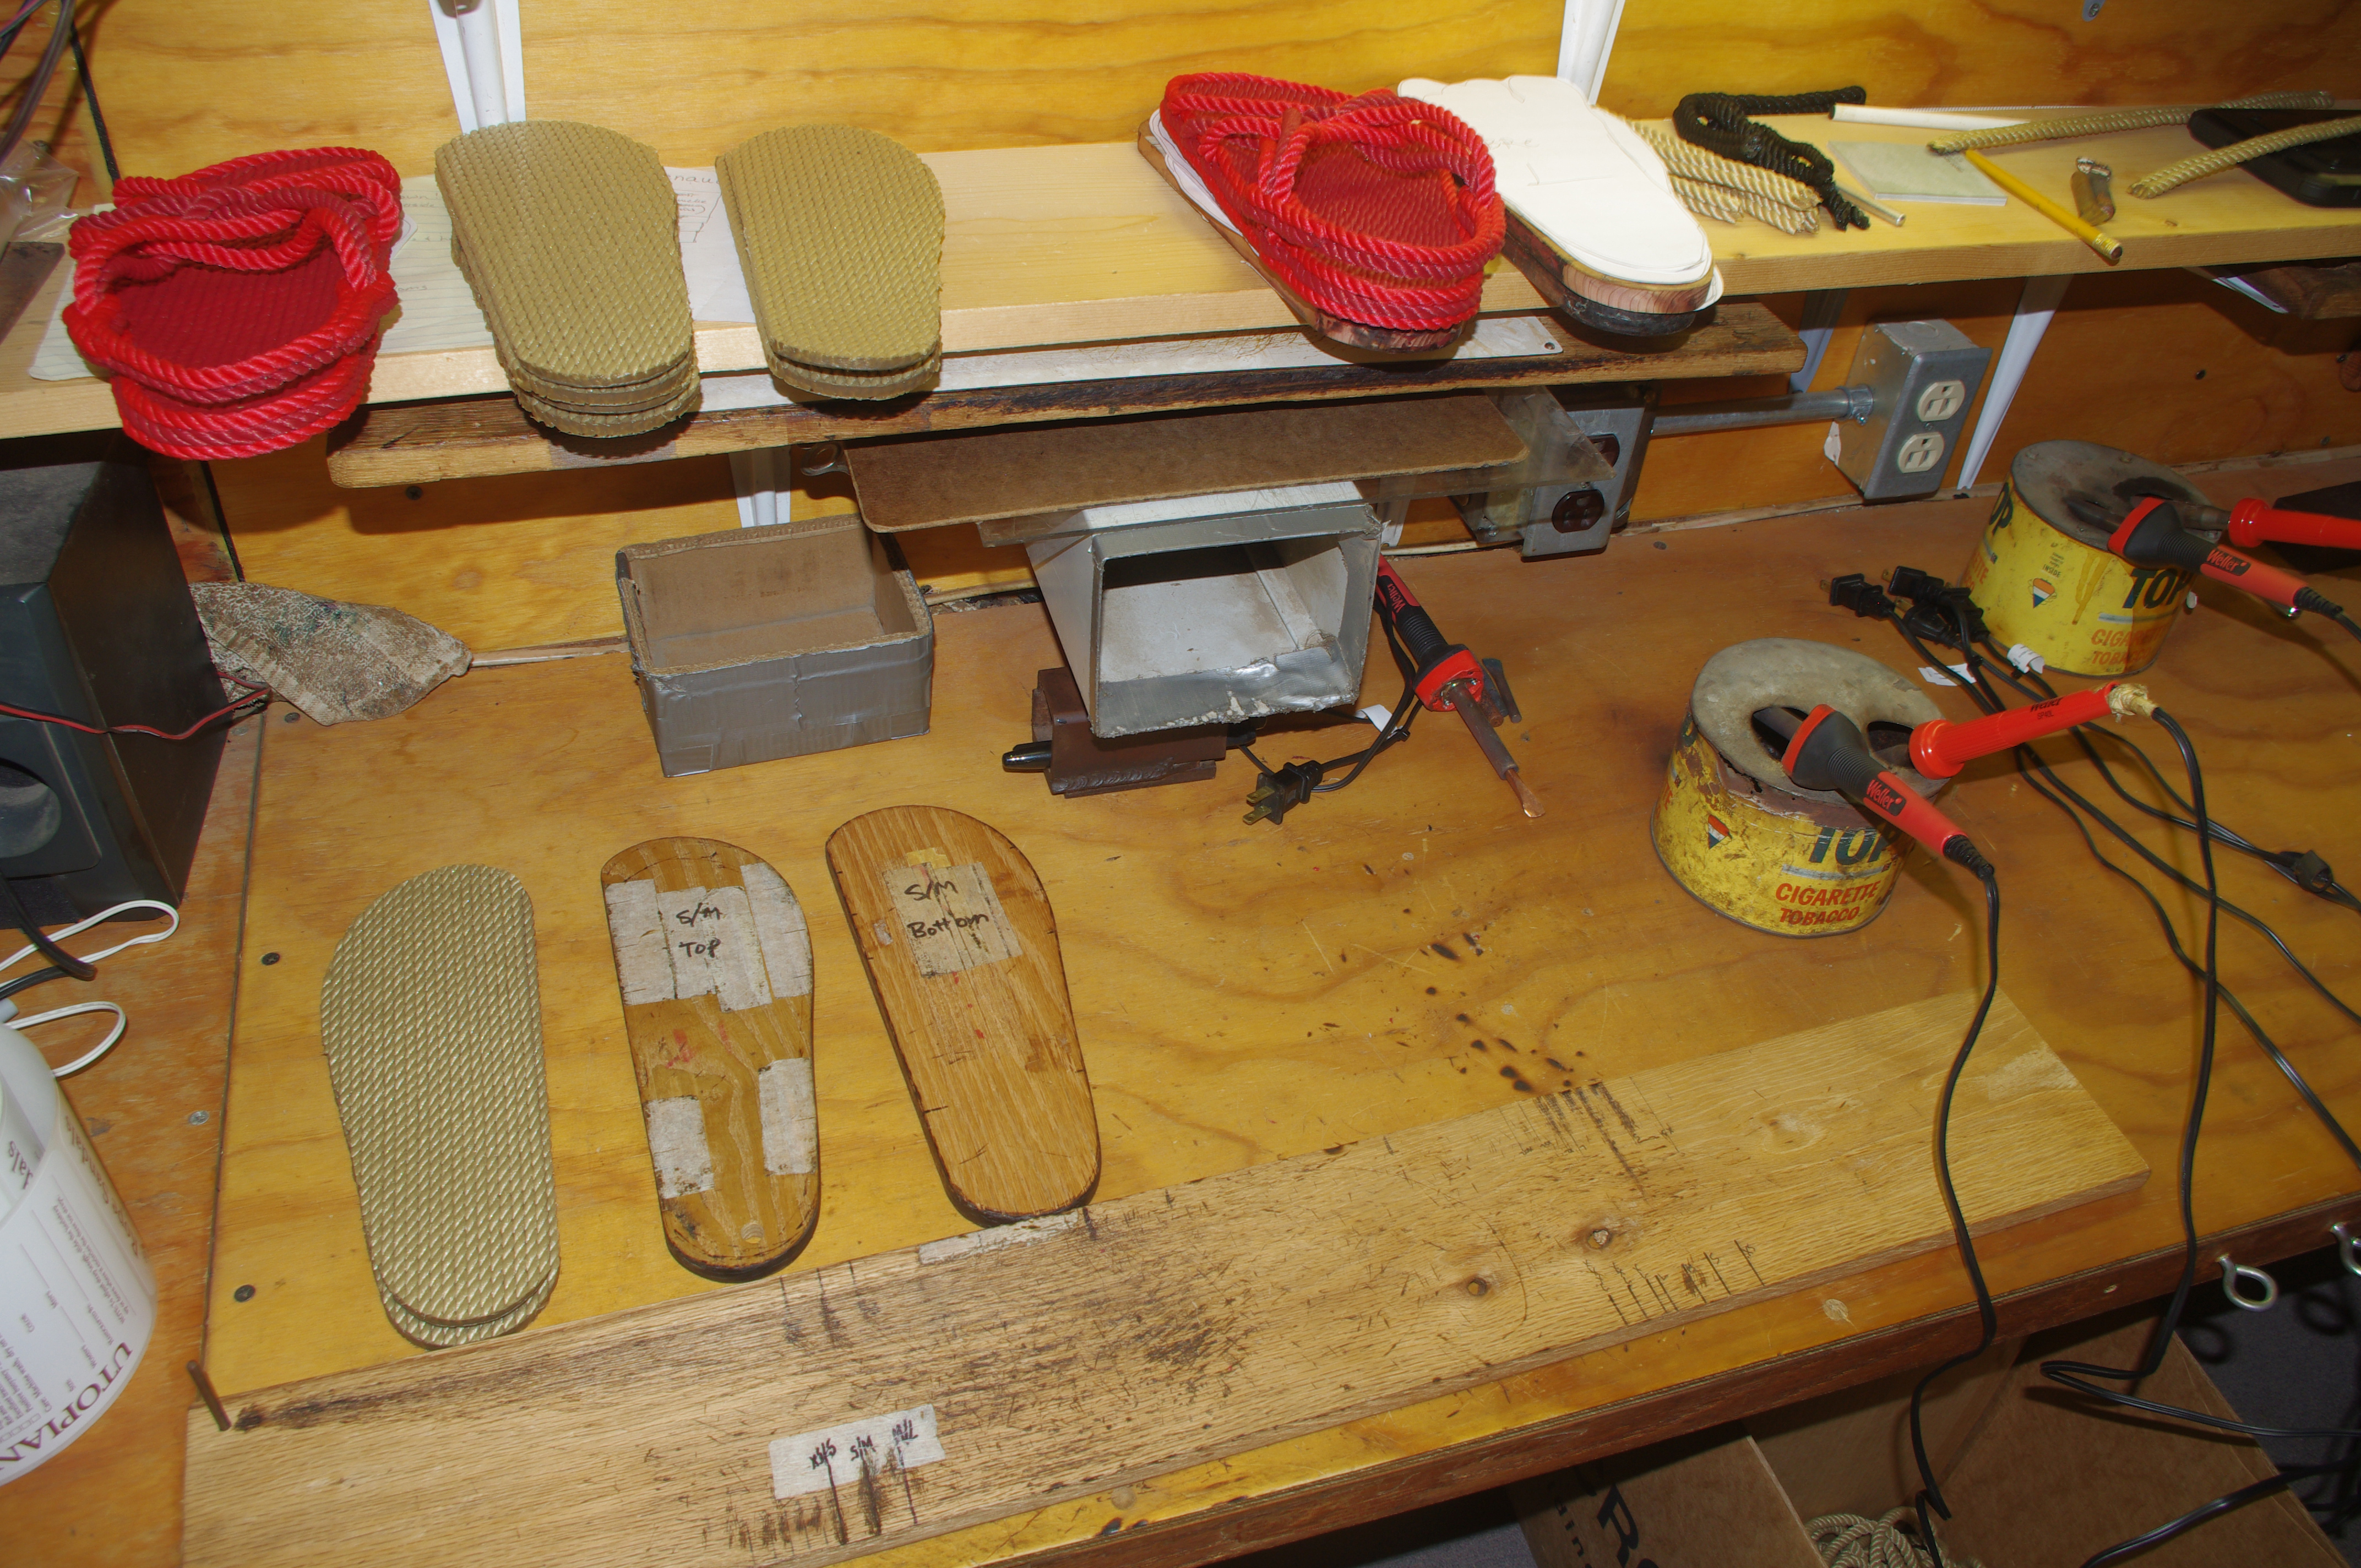 Products for which the East Wind Community is renowned include nut butter and its line of Utopian rope sandals, produced by its members in the on-site workshop